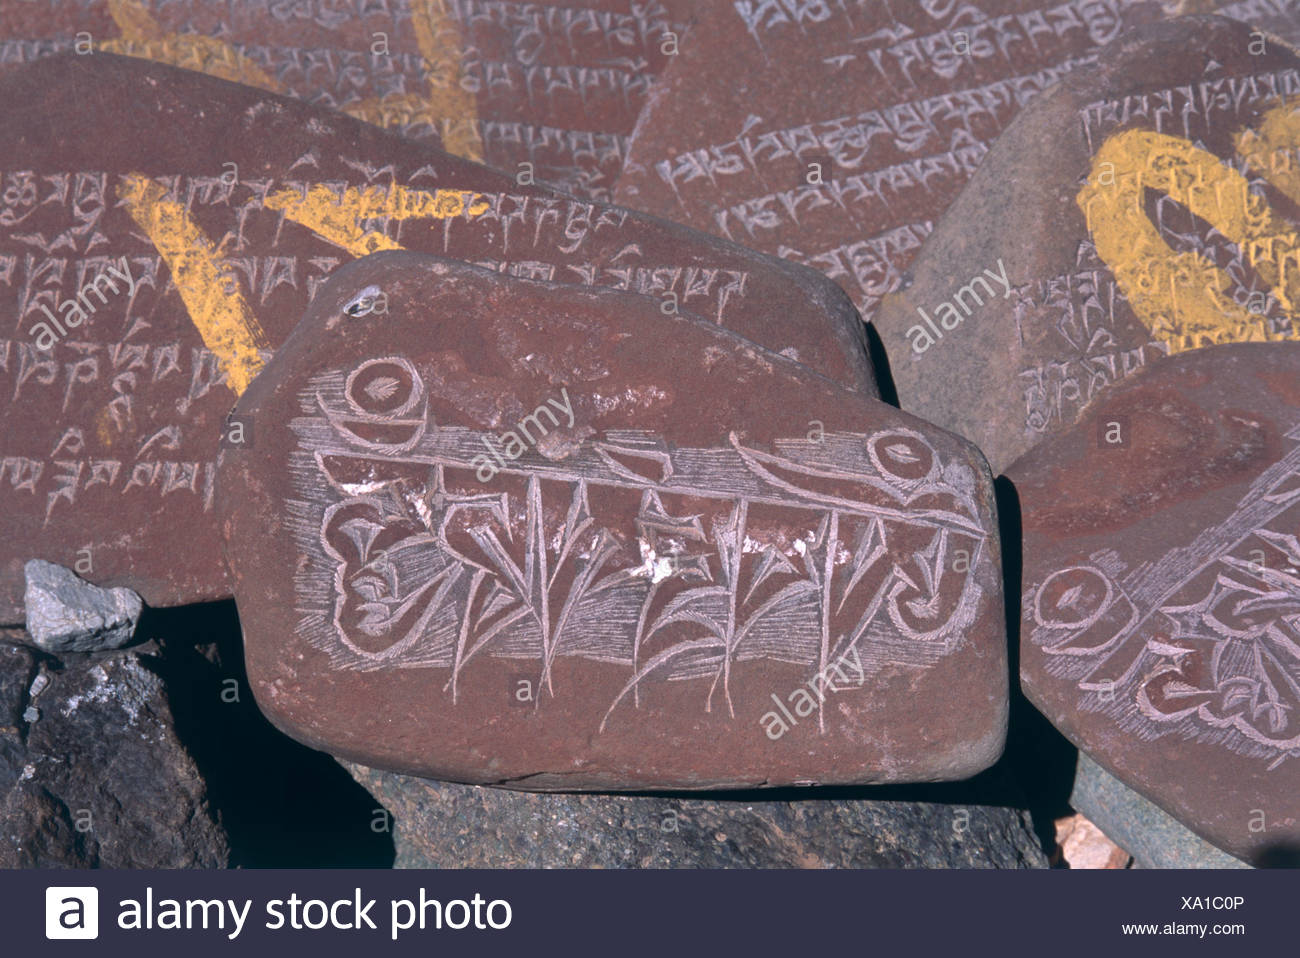 China, Tibet, Mani Stone, carved with Sanskrit mantra ommani padme hum (hail to the jewel in the lotus) - Stock Image